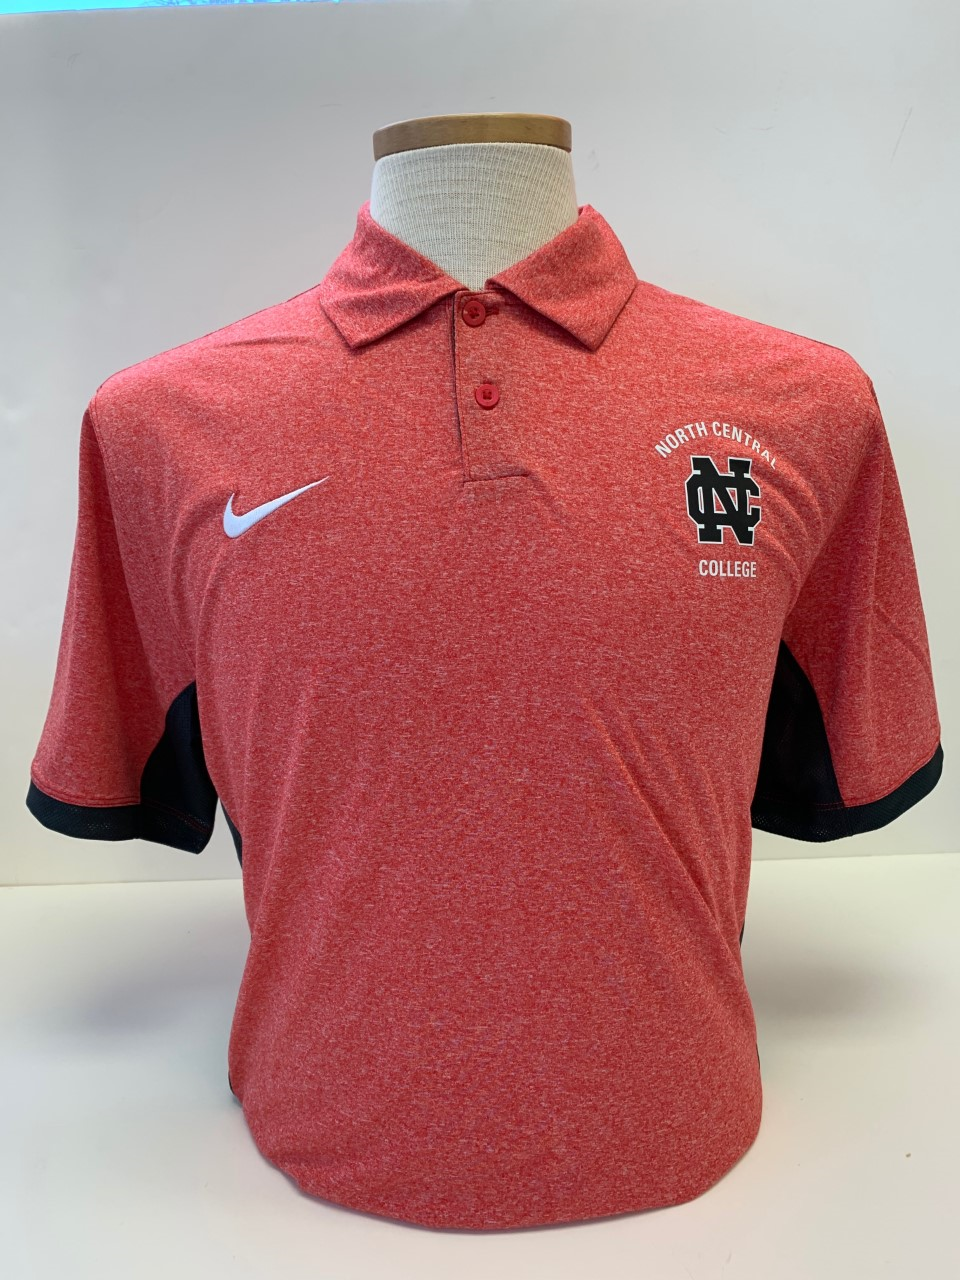 Image for the Nike Victory Polo product